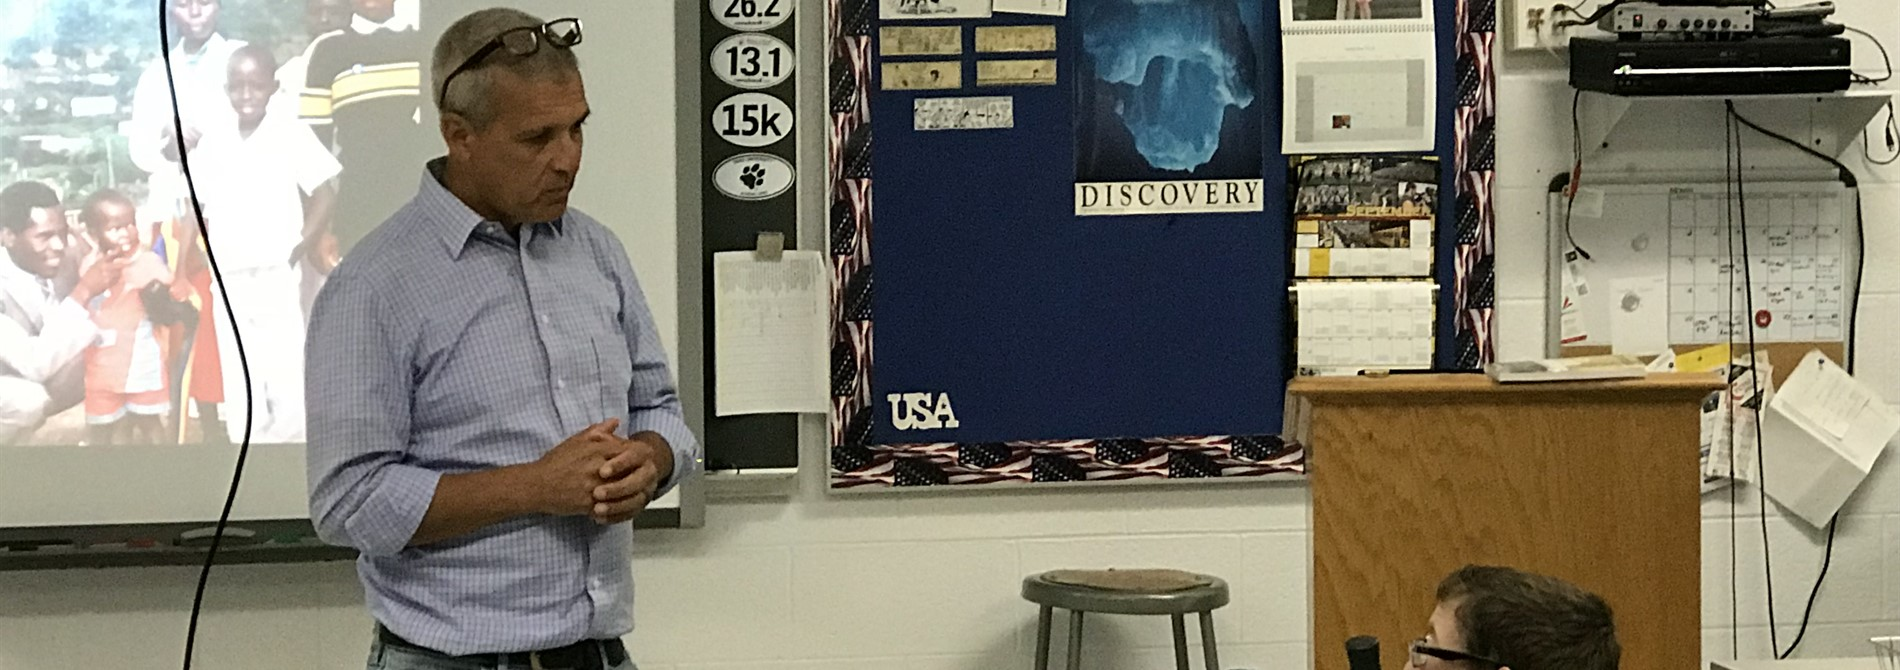 Carl Wilkins, the only American who remained on the ground during the Rwanda Genocide, speaks with the Holocaust class about his experiences.